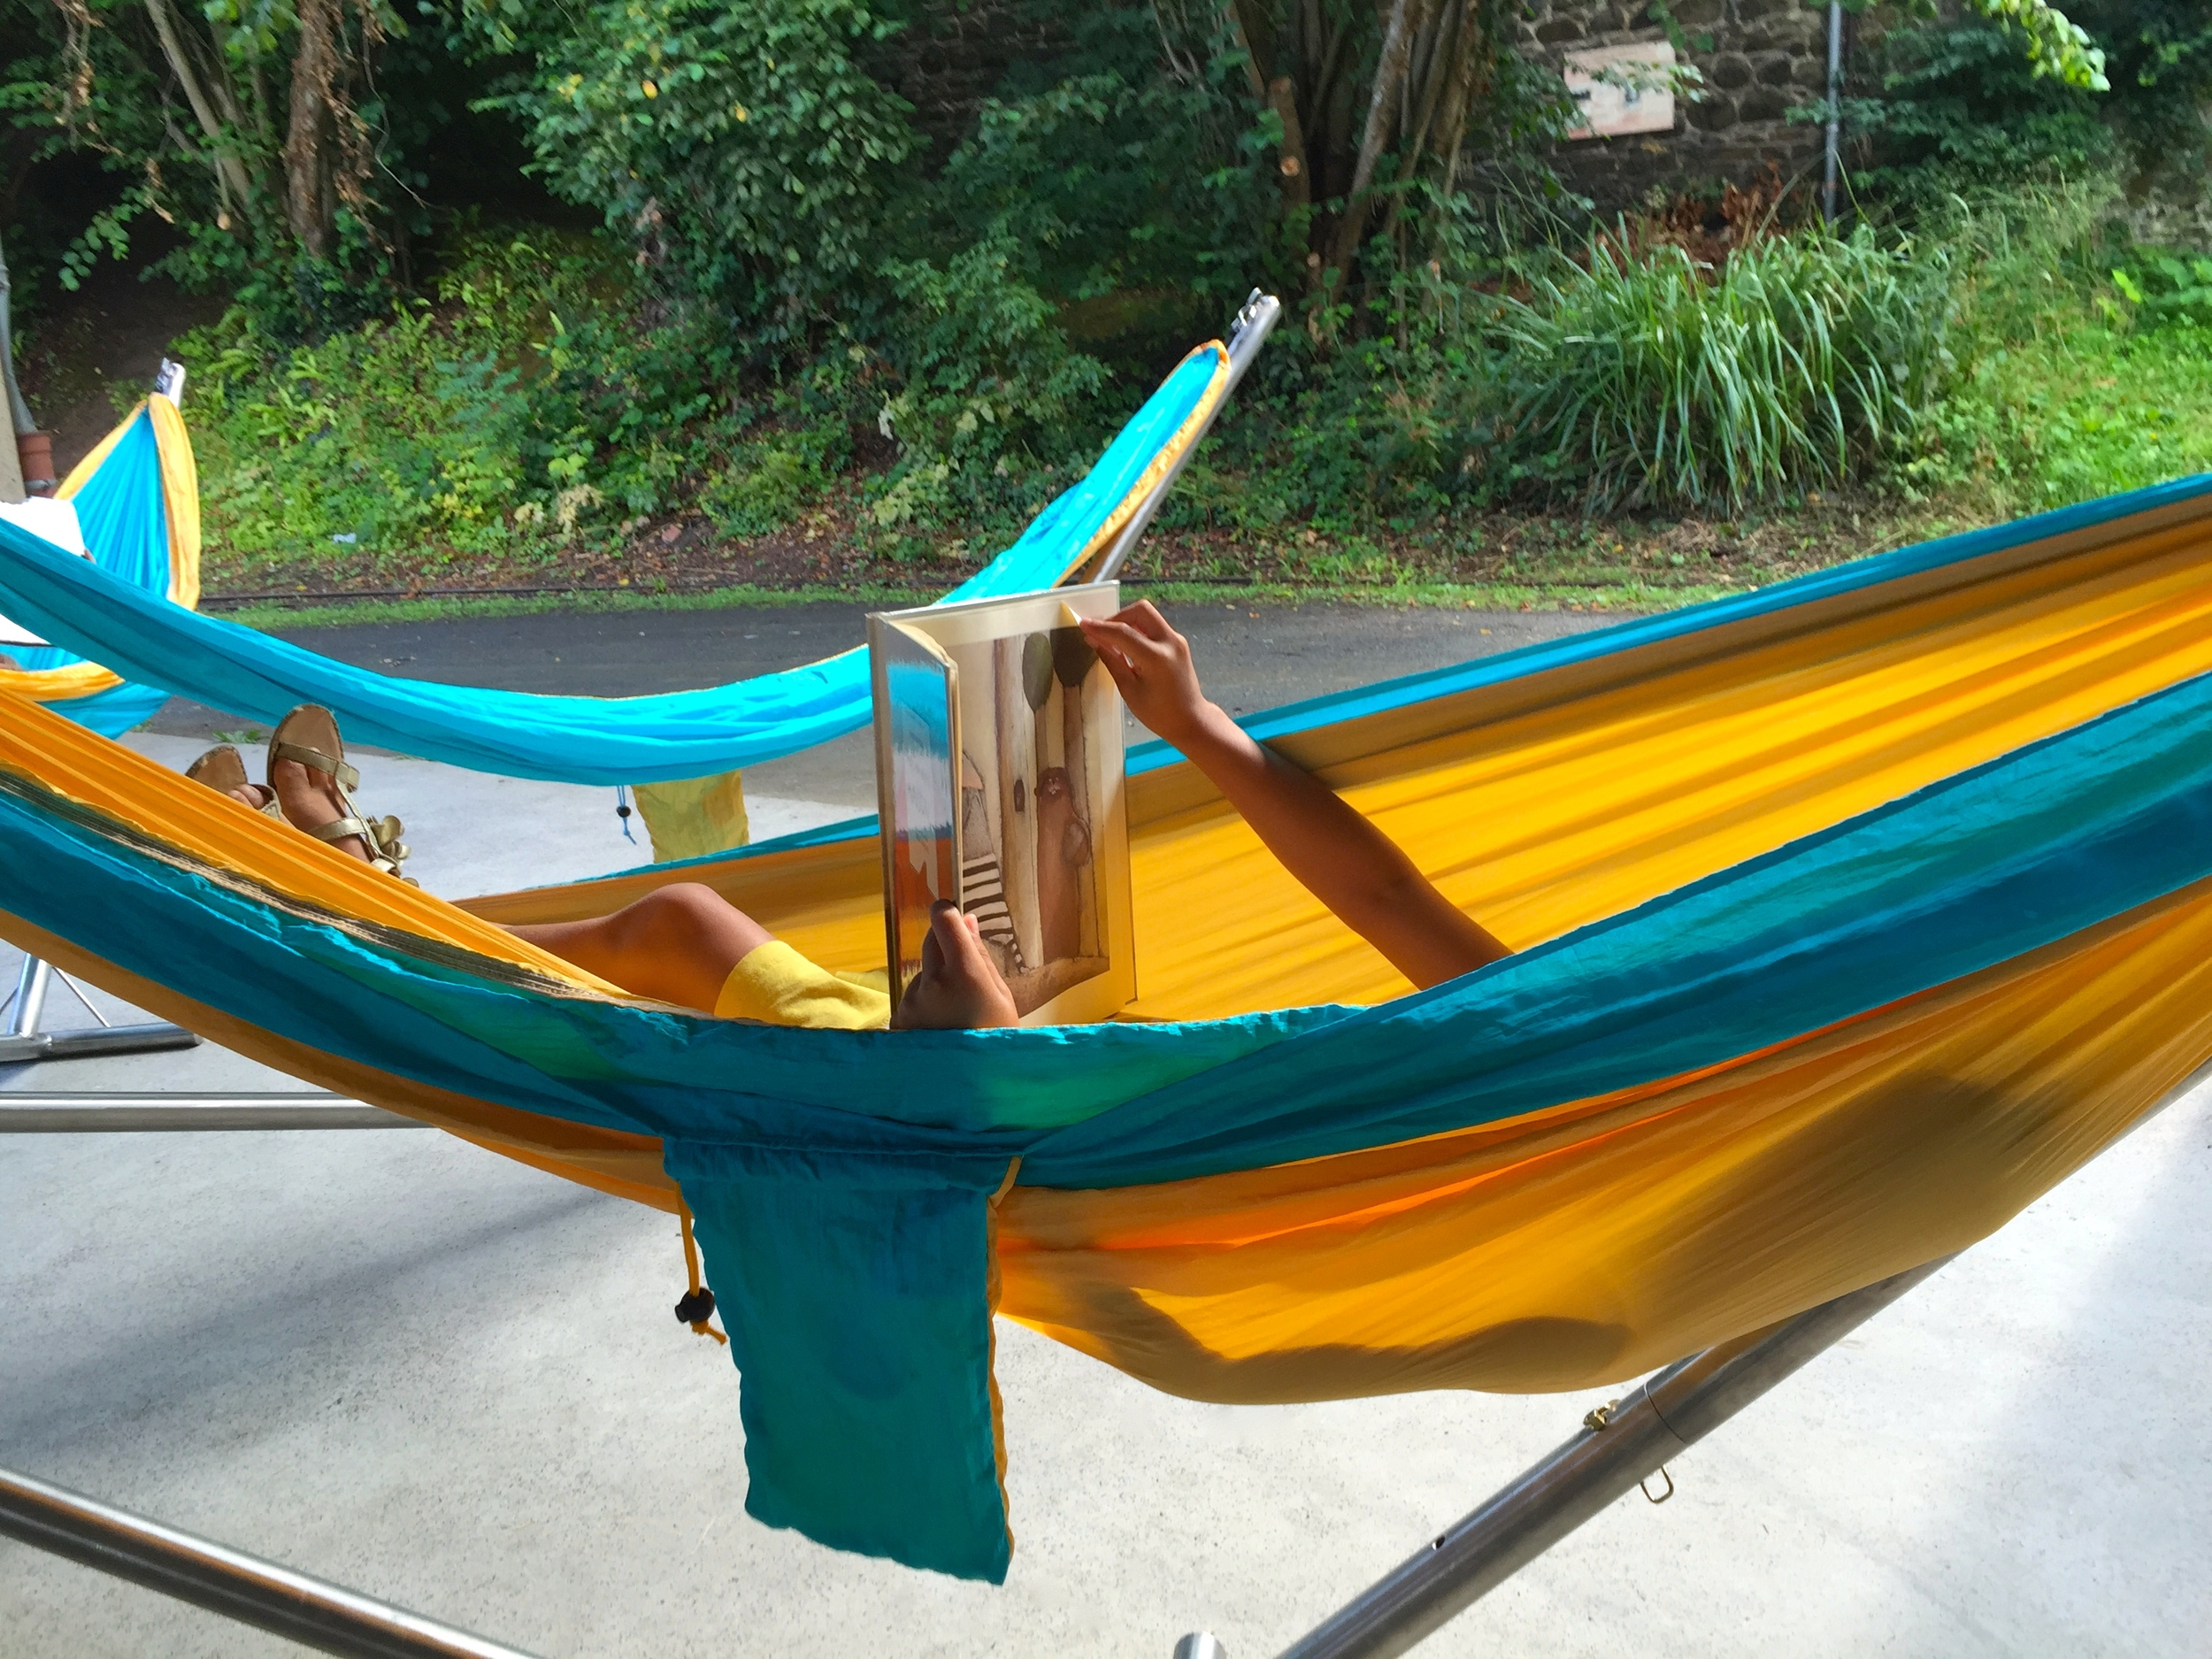 My daughter enjoying the traveling library's hammock